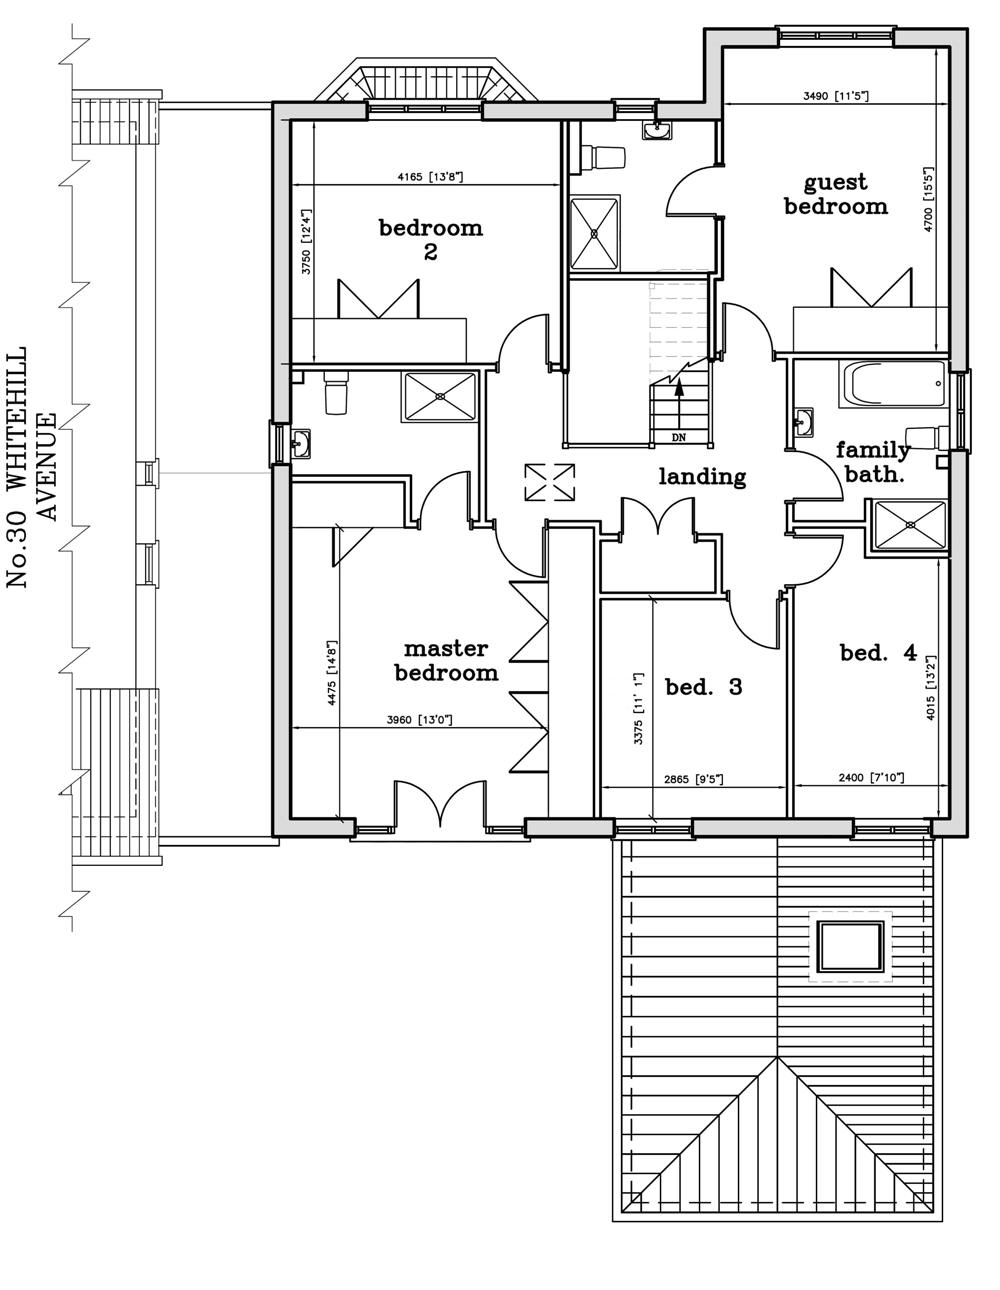 Mead Estates Ltd 32 Whitehill Avenue Luton Floor Plans